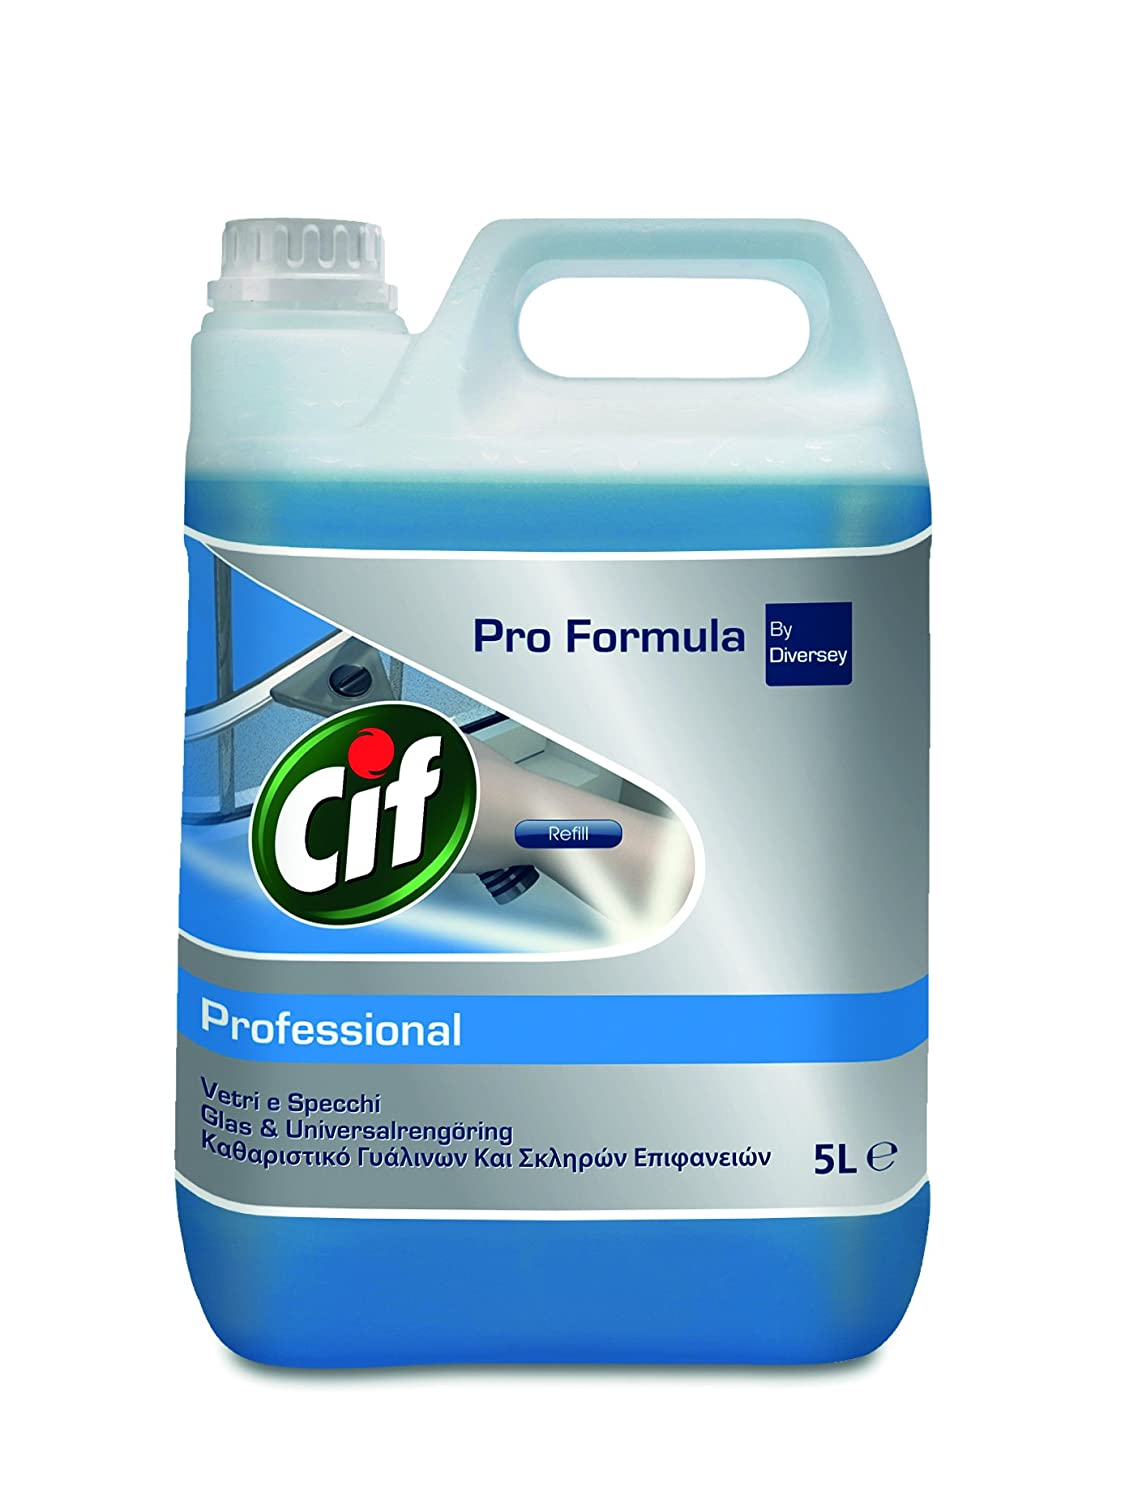 Cif 7517832 Professional Window and Multi-Surface Cleaner, 5 Litres 5Litres Diversey